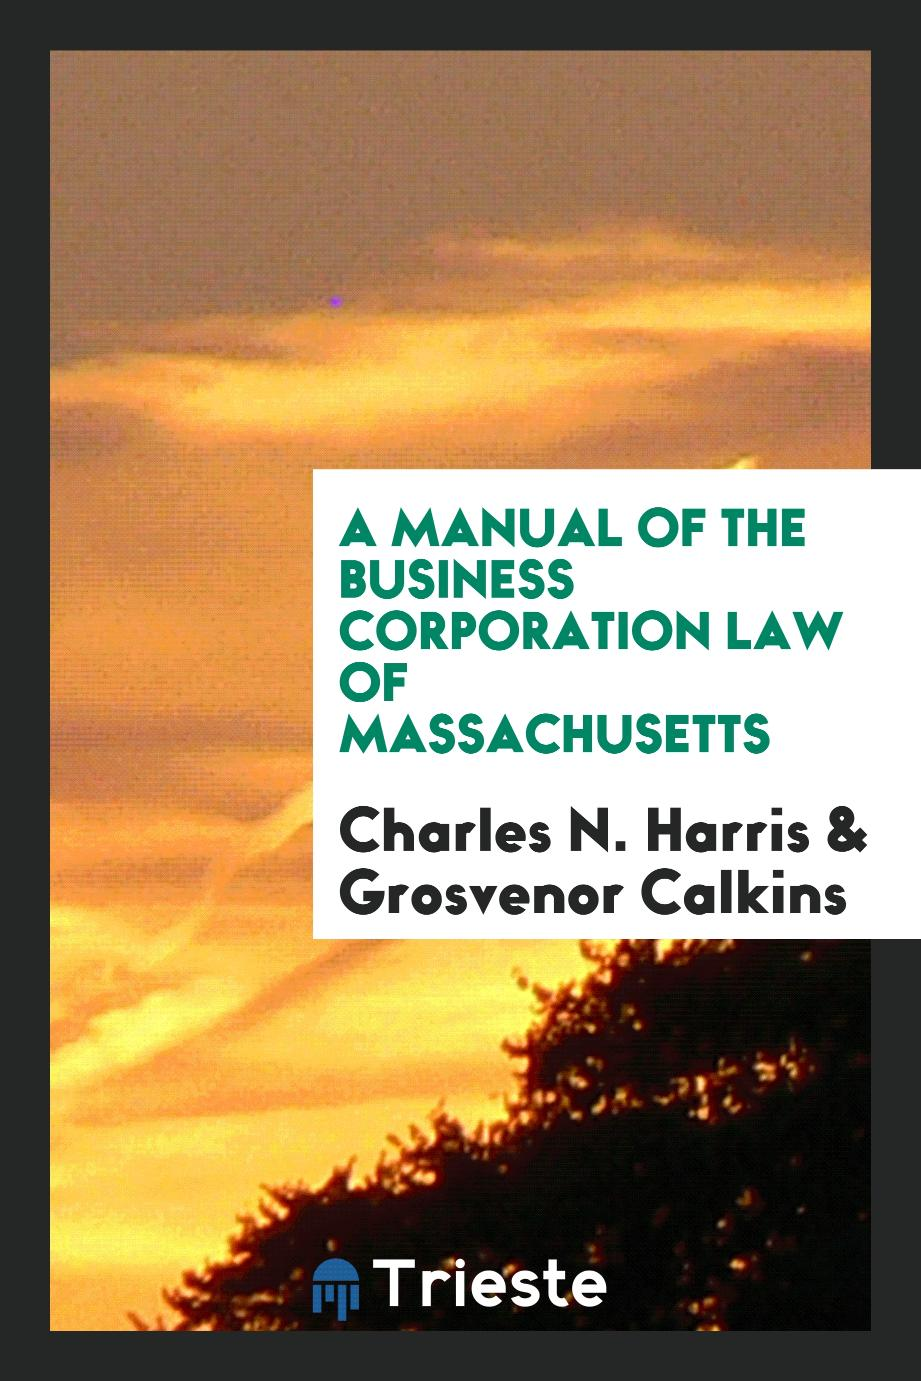 A Manual of the Business Corporation Law of Massachusetts